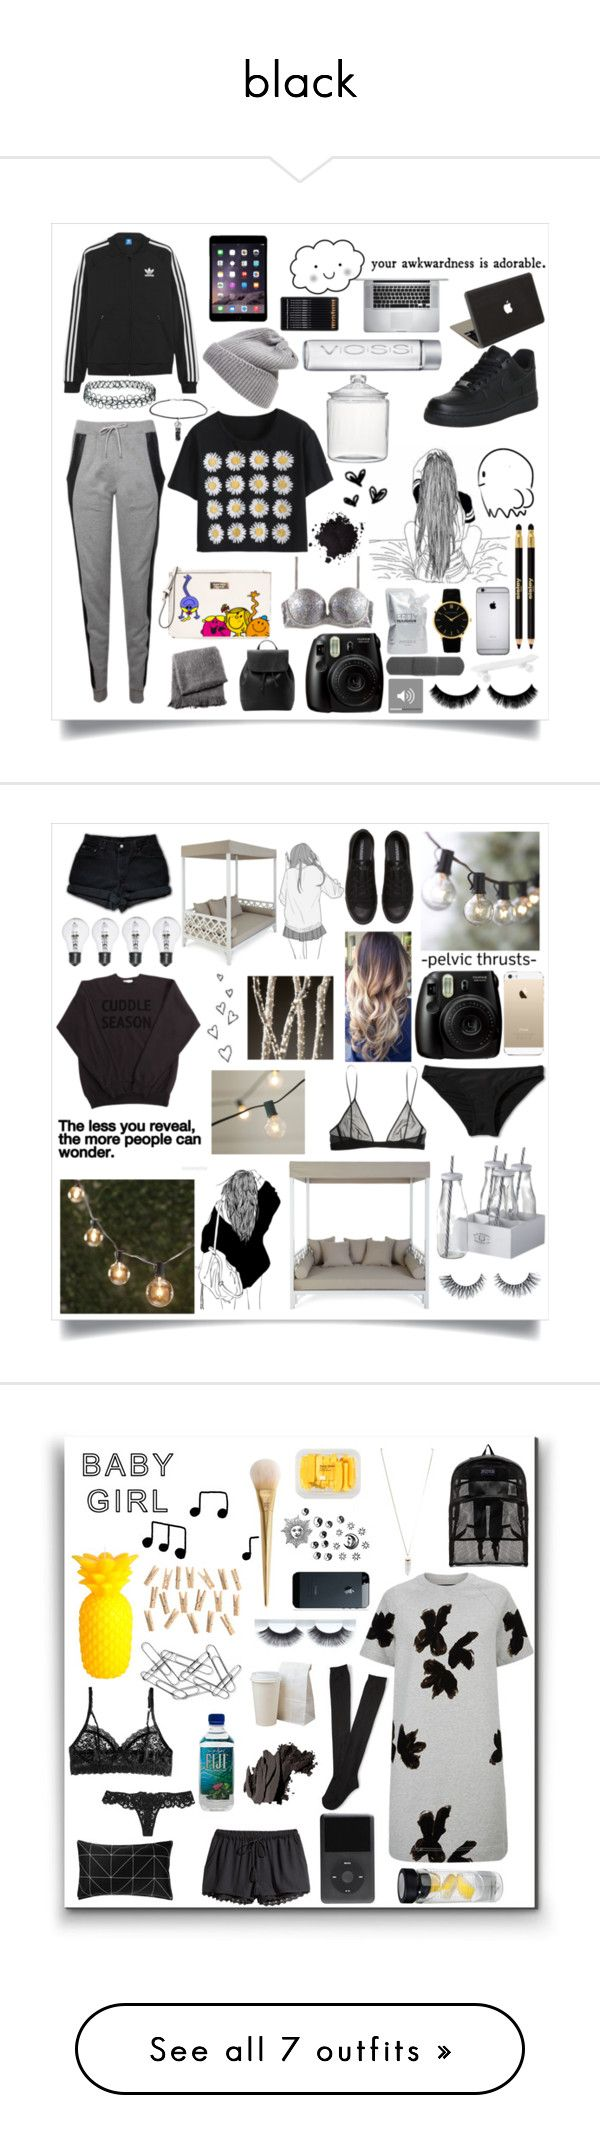 """""""black"""" by estherlillymae ❤ liked on Polyvore featuring Topshop, Lot78, UGG Australia, NIKE, H&M, adidas Originals, Crate and Barrel, MANGO, From the Road and Prtty Peaushun"""